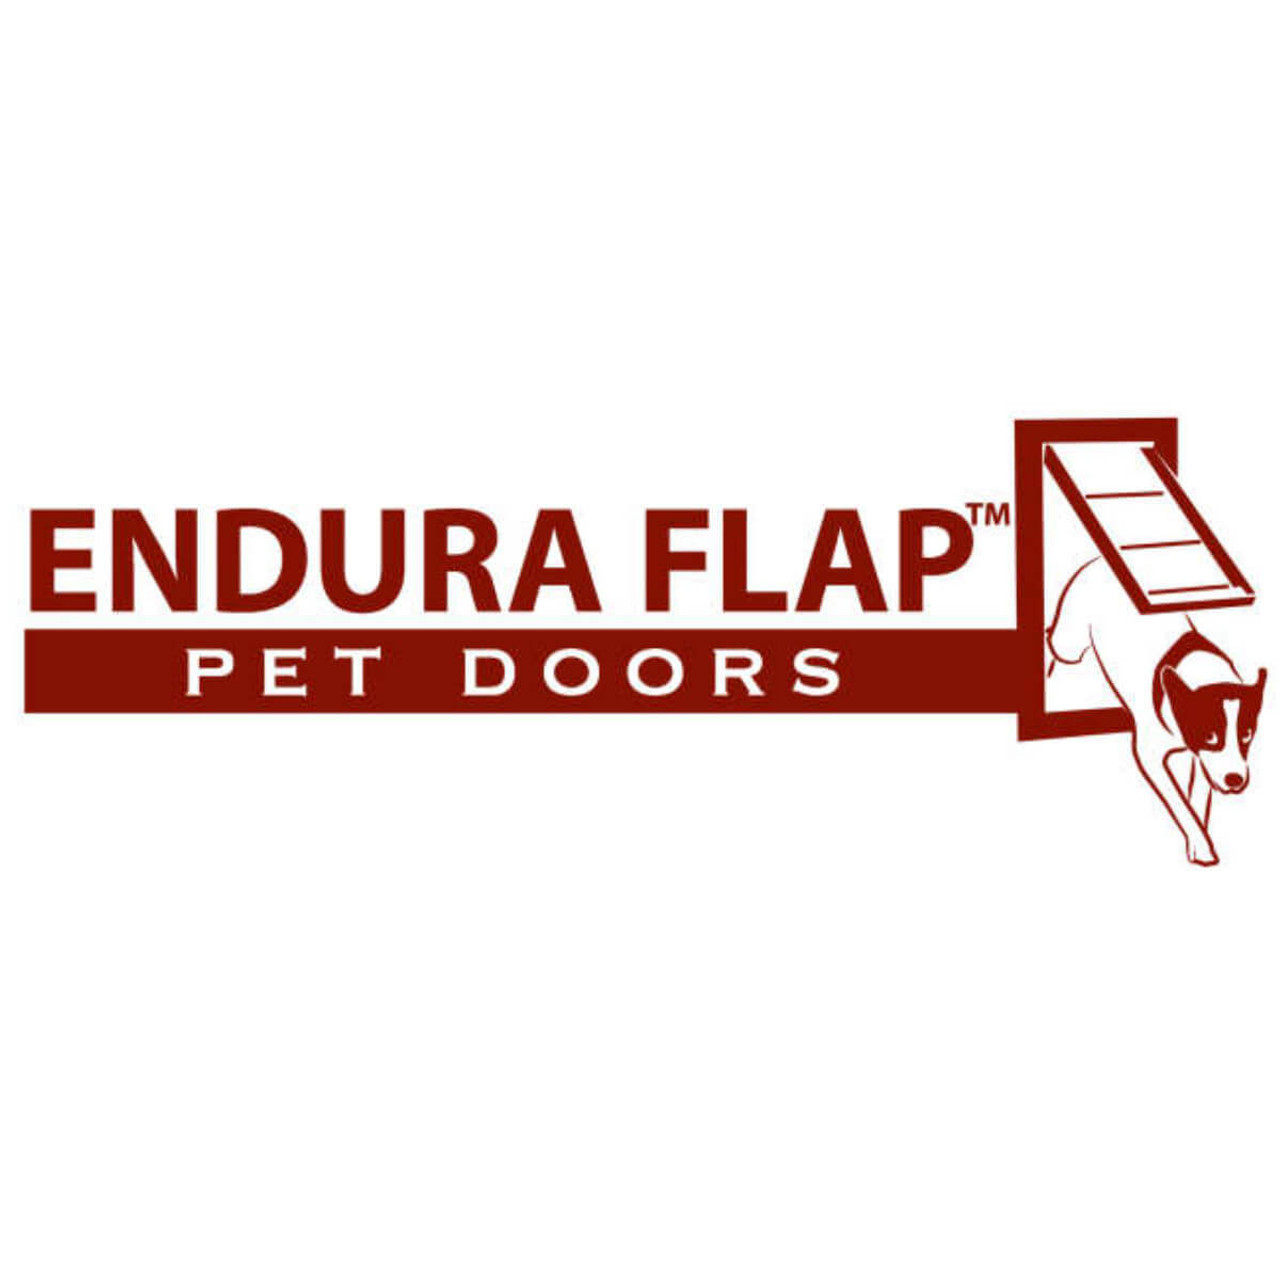 Endura Flap Parts and Accessories